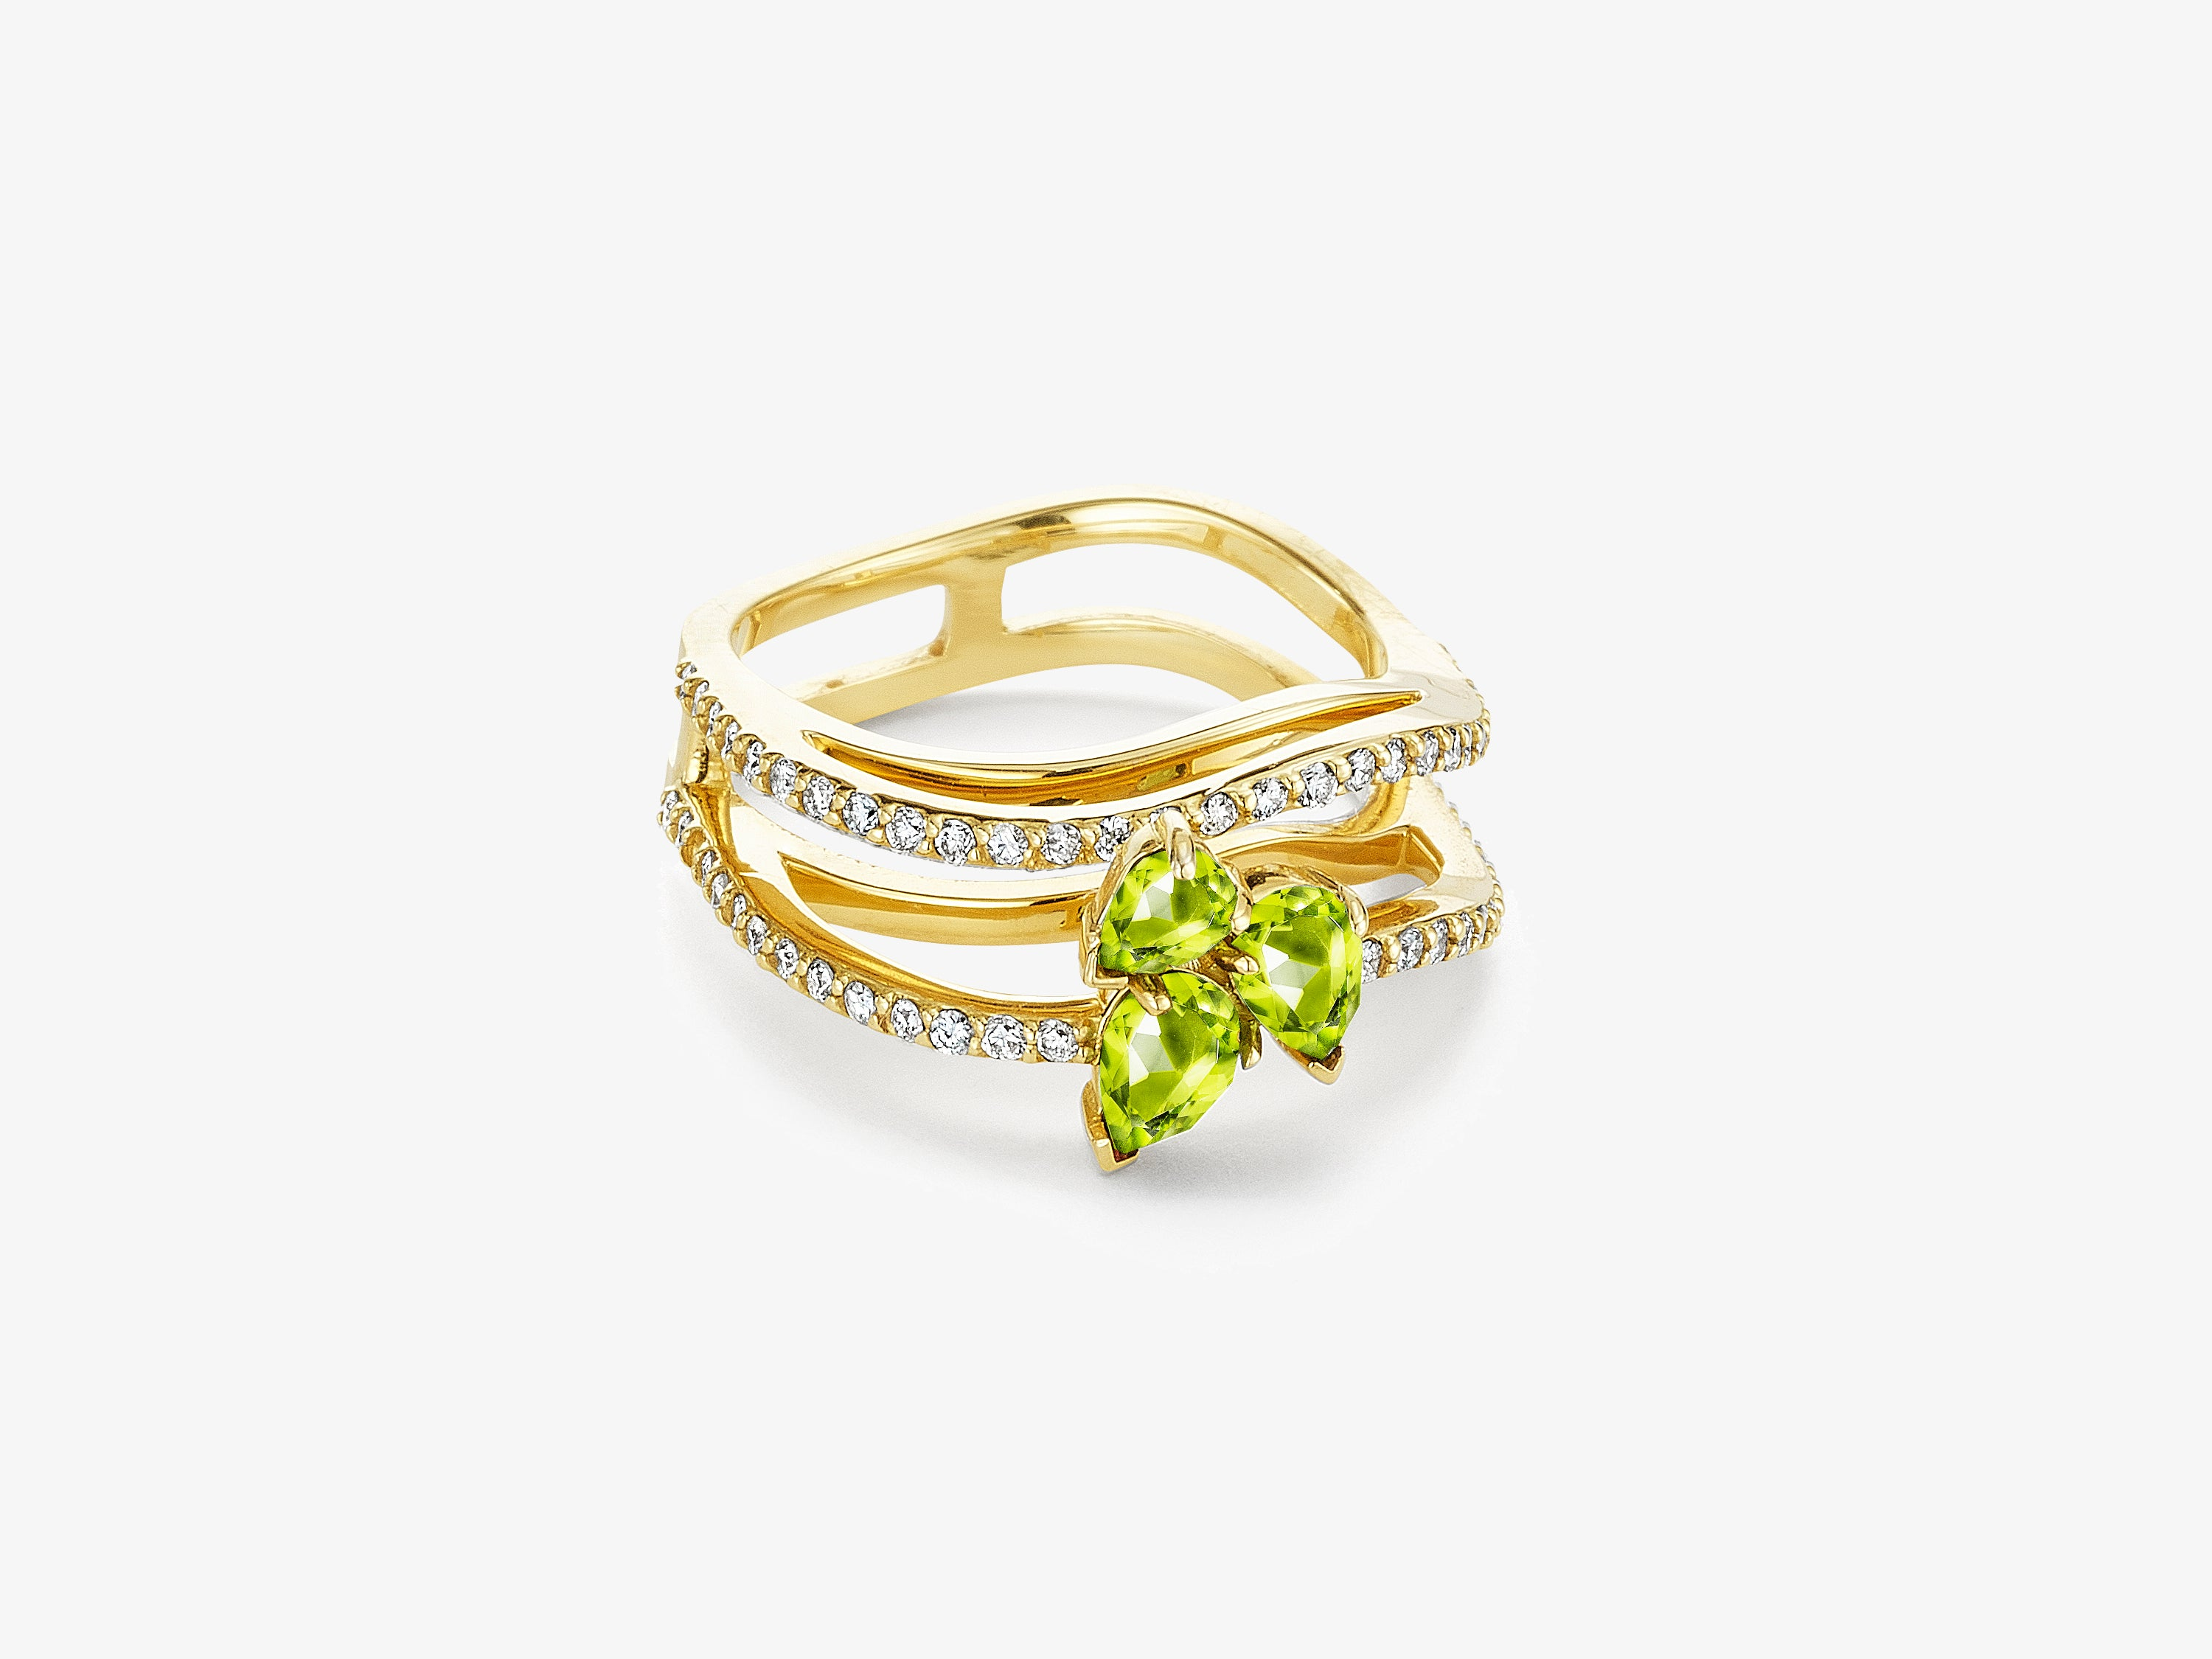 Three Dimensional Wavy Ring with Full Diamond Pave and Pear Shaped Gemstone Cluster Detail